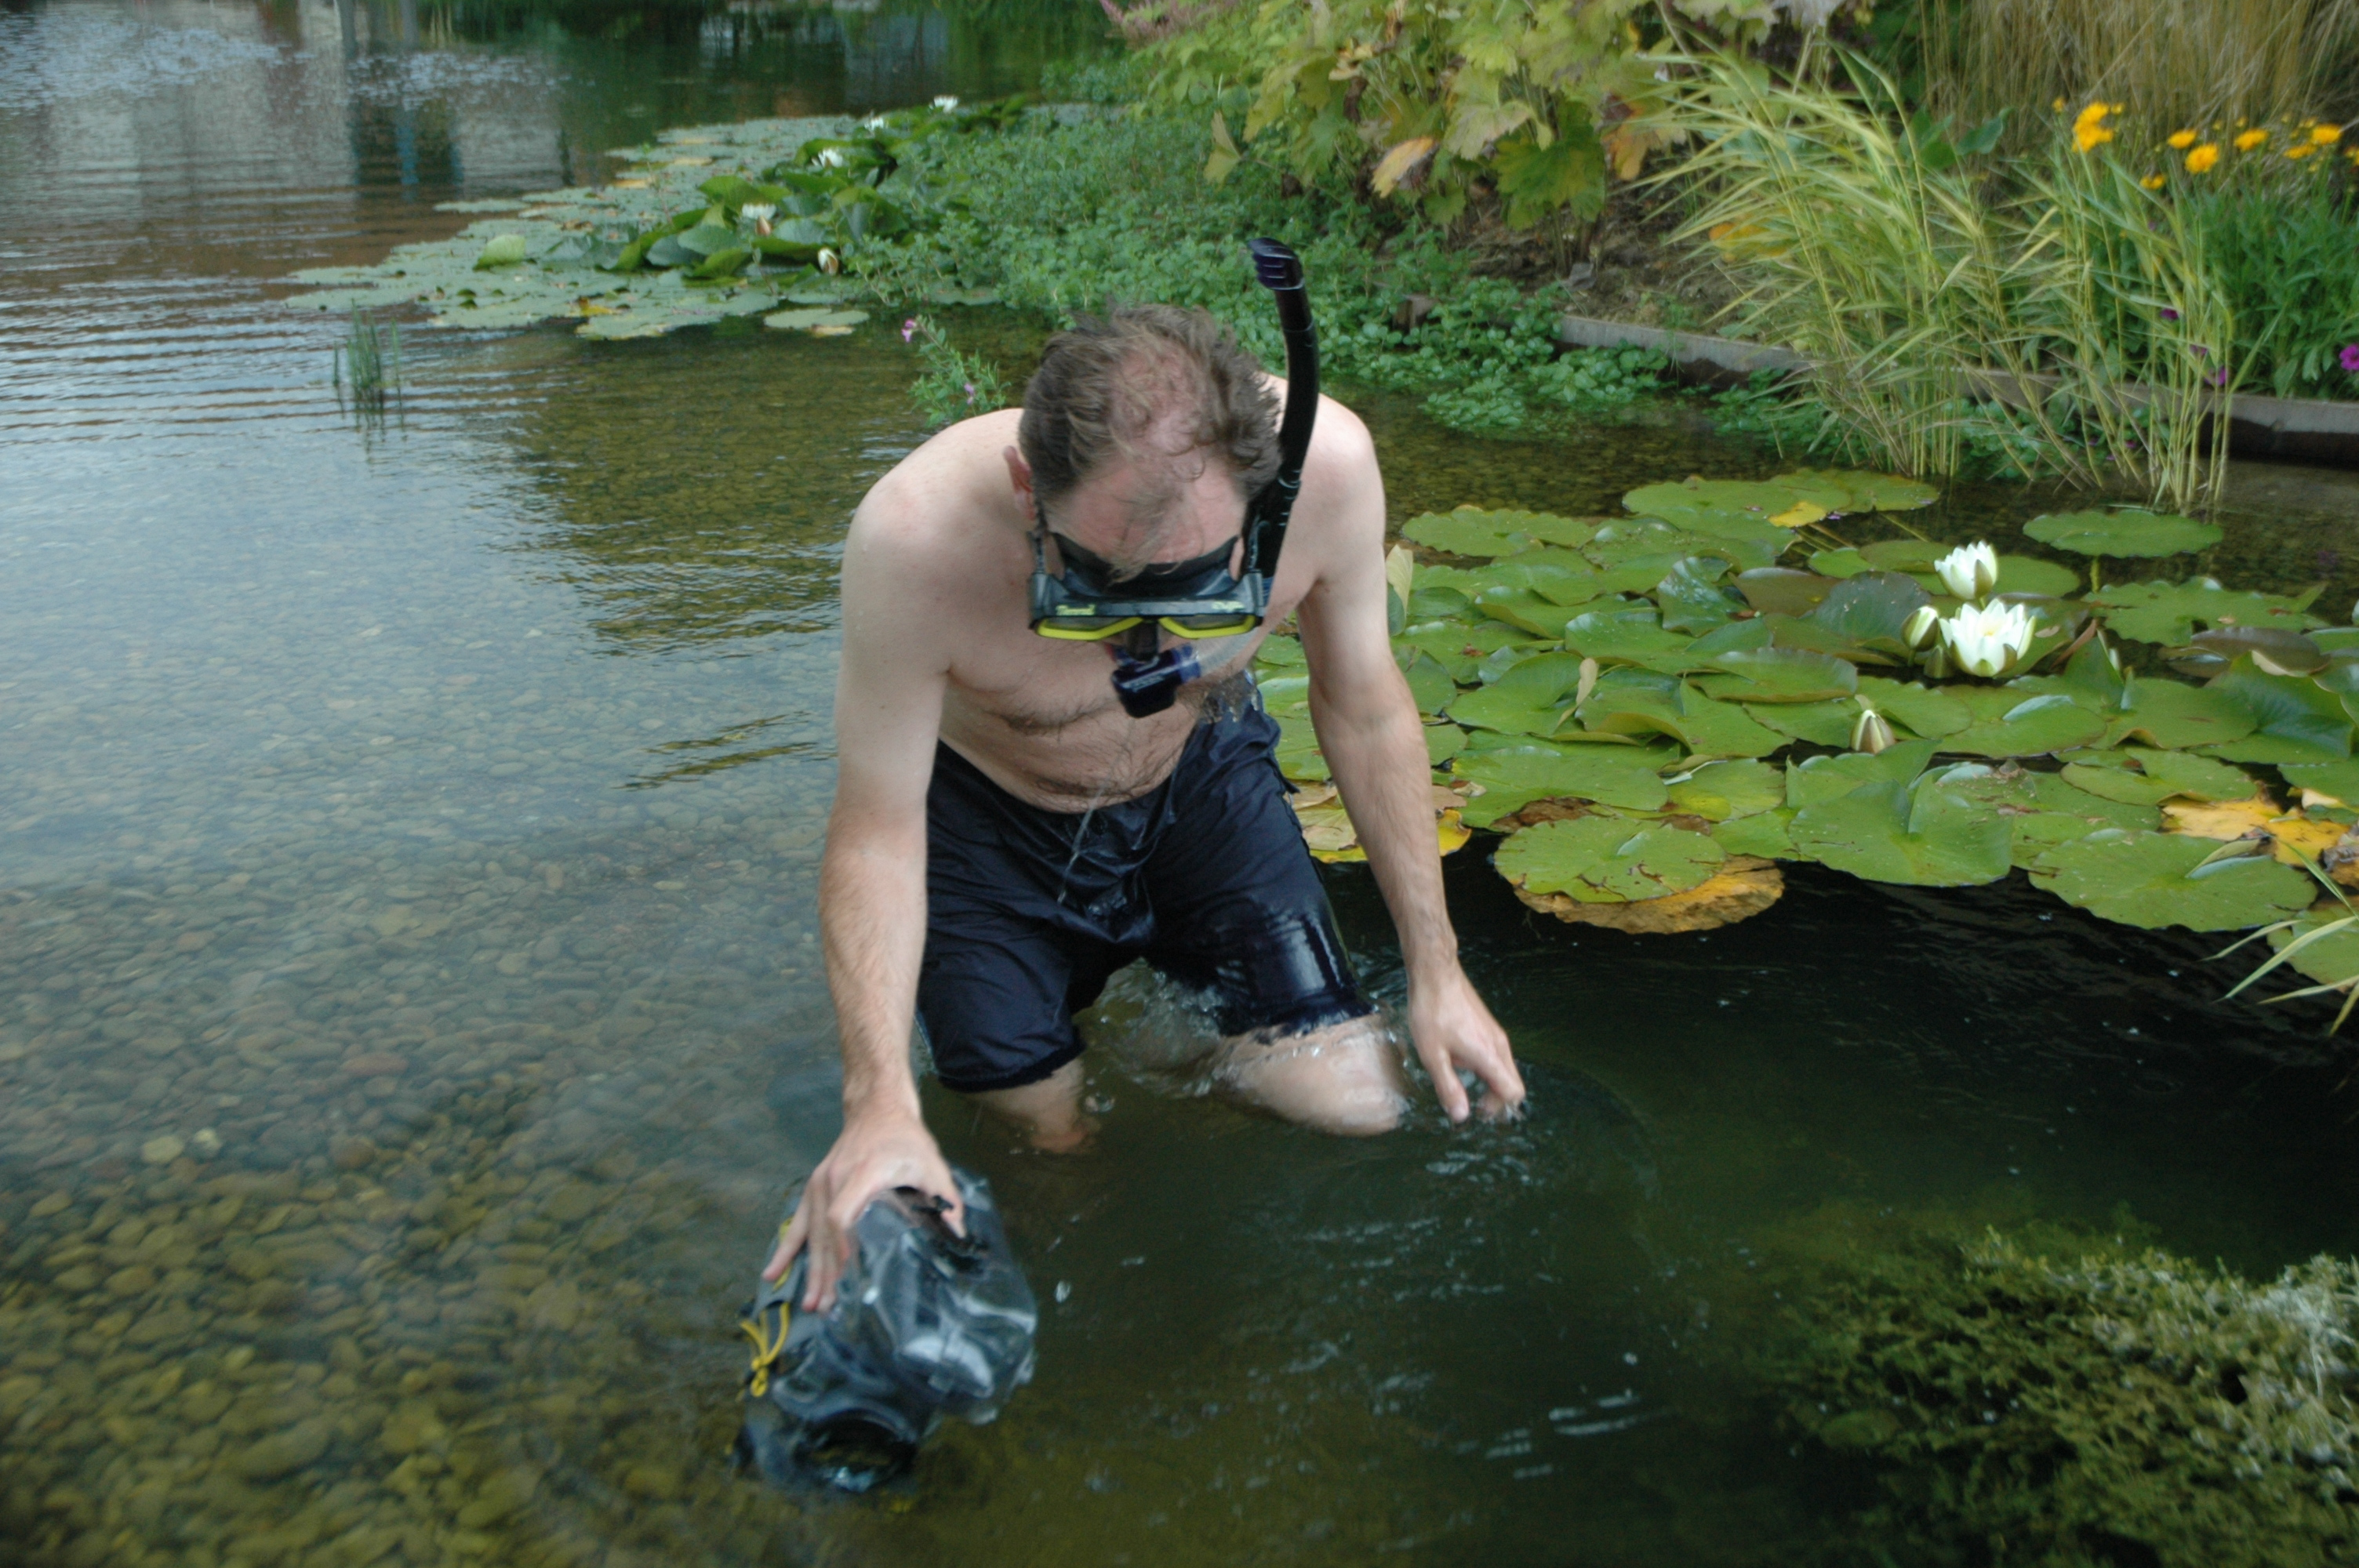 How To Empty Backyard Pond : Things you don?t often see in garden ponds  The Garden Pond Blog